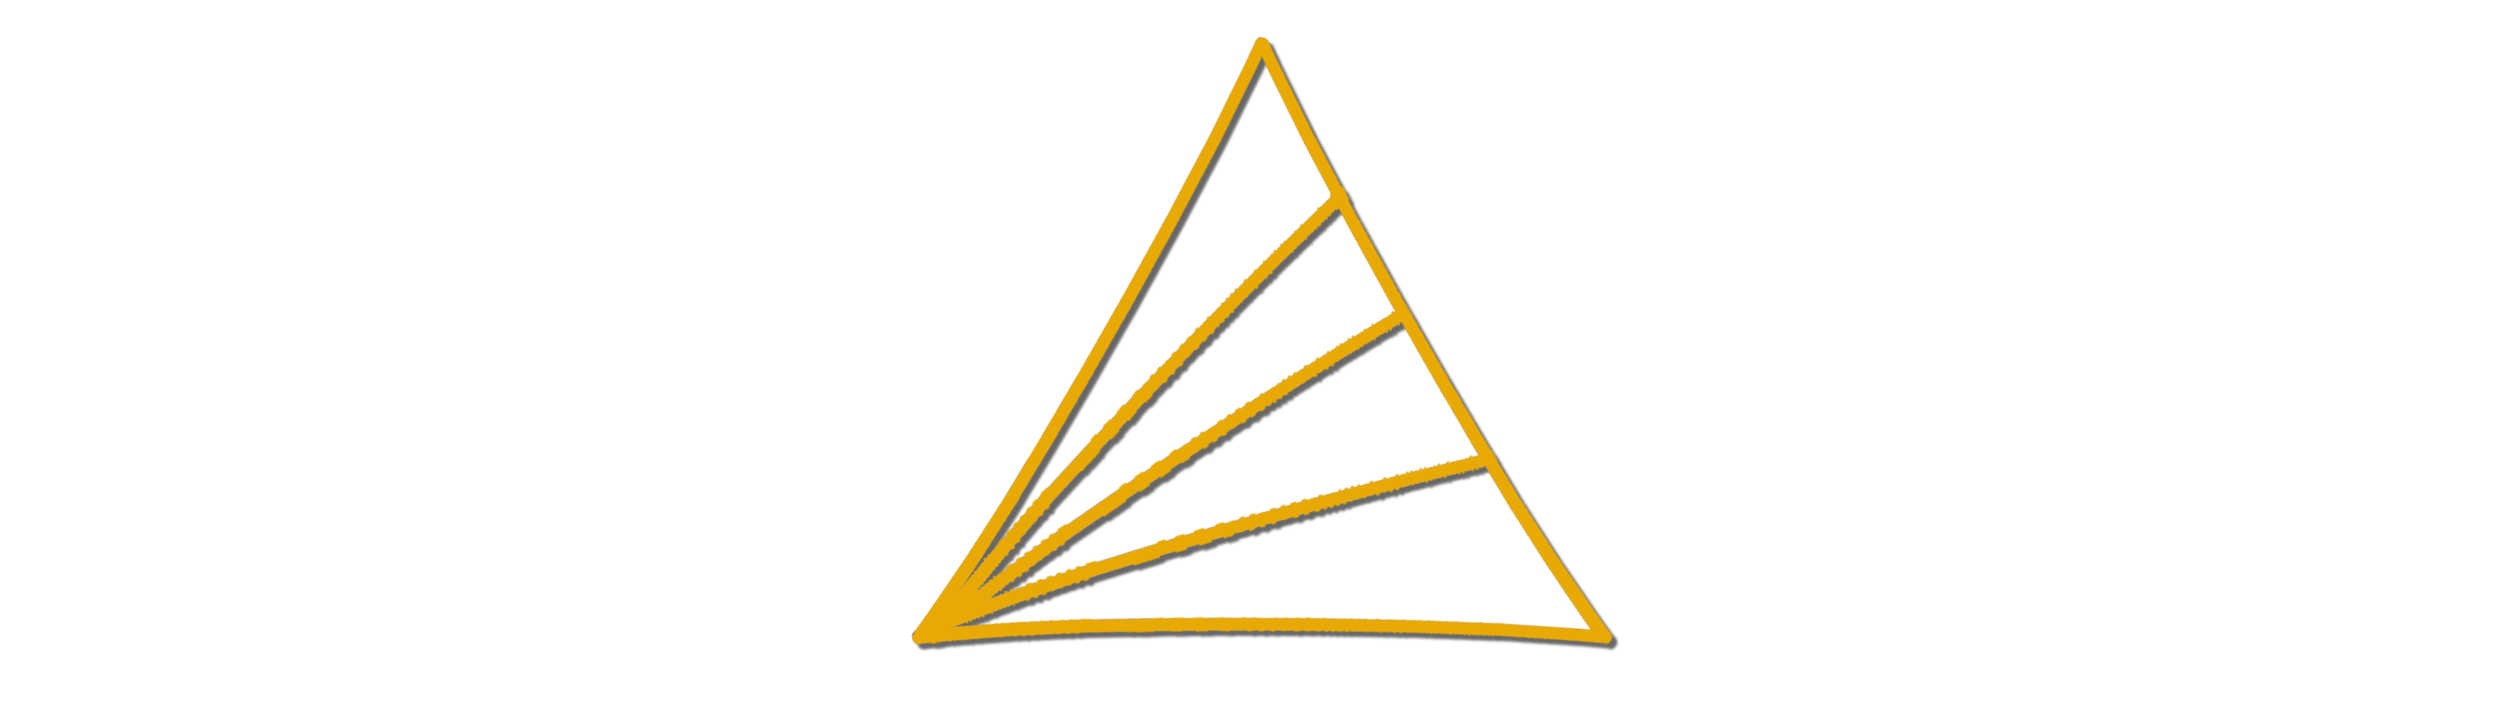 triangle-gold-dropshadow.png